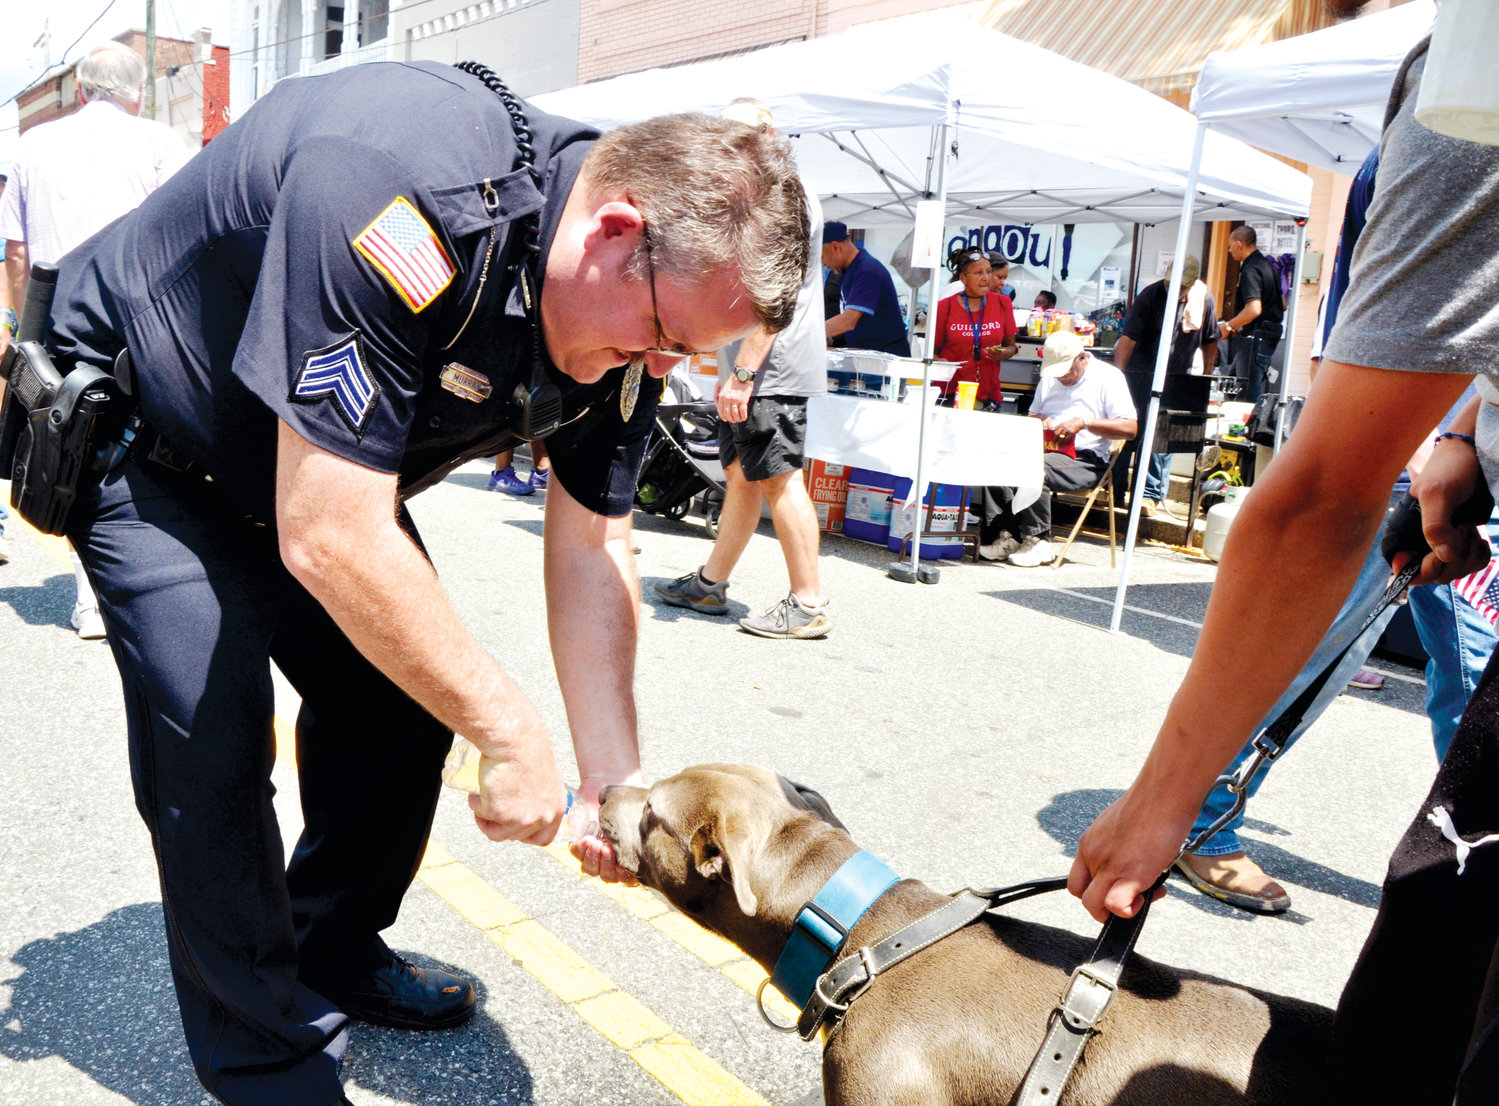 Siler City Police Department Sergeant Jon Murray gives 'Choppie' a drink Saturday afternoon at the Spring Chicken Festival.